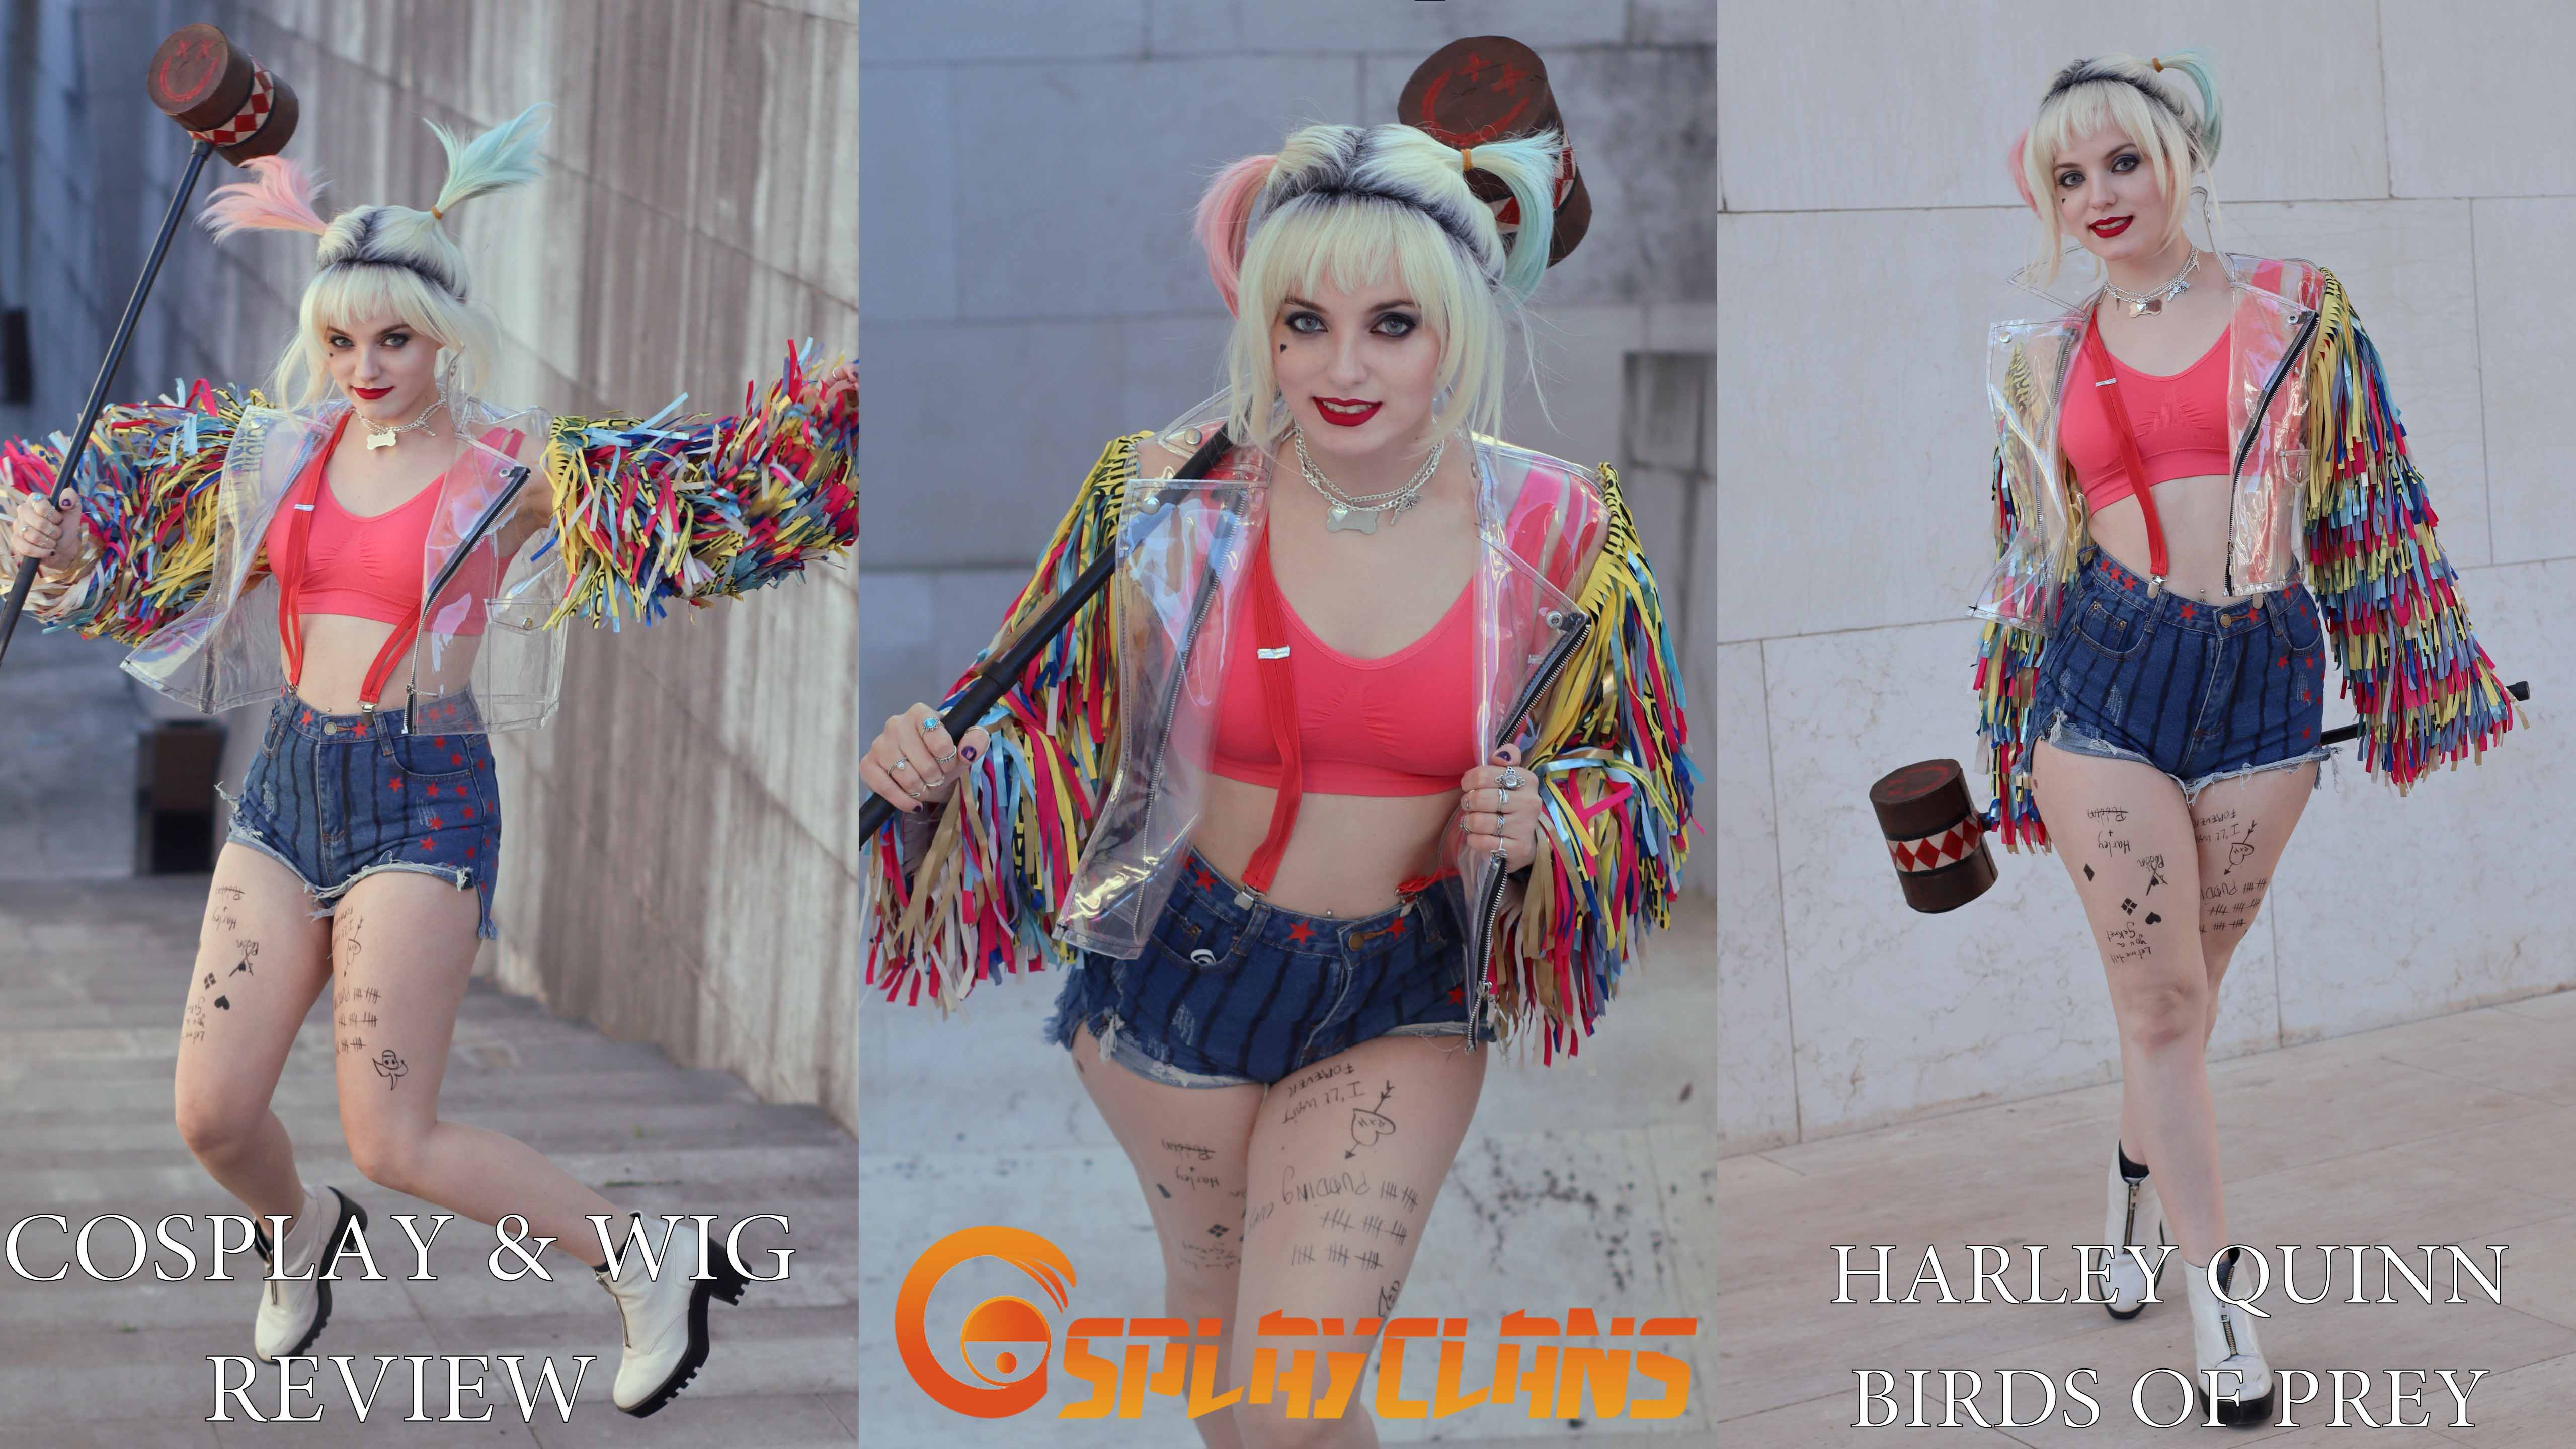 Cosplay & wig review: Harley Quinn Birds of Prey from Cosplayclans